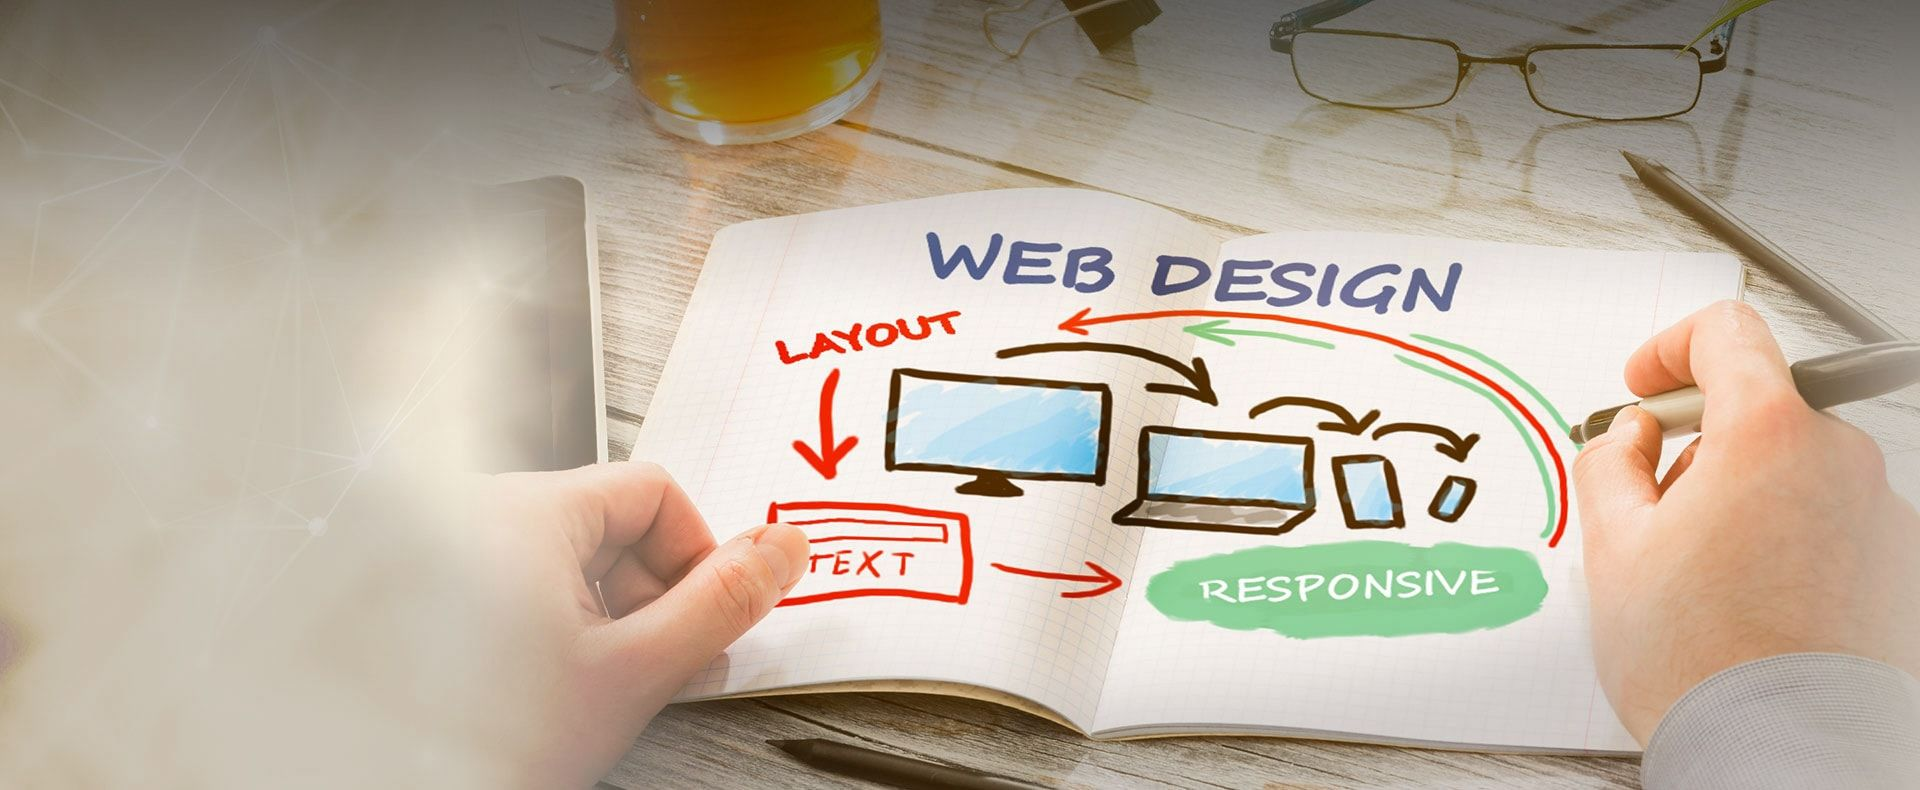 Custom Web Design Services Company based in Maryland